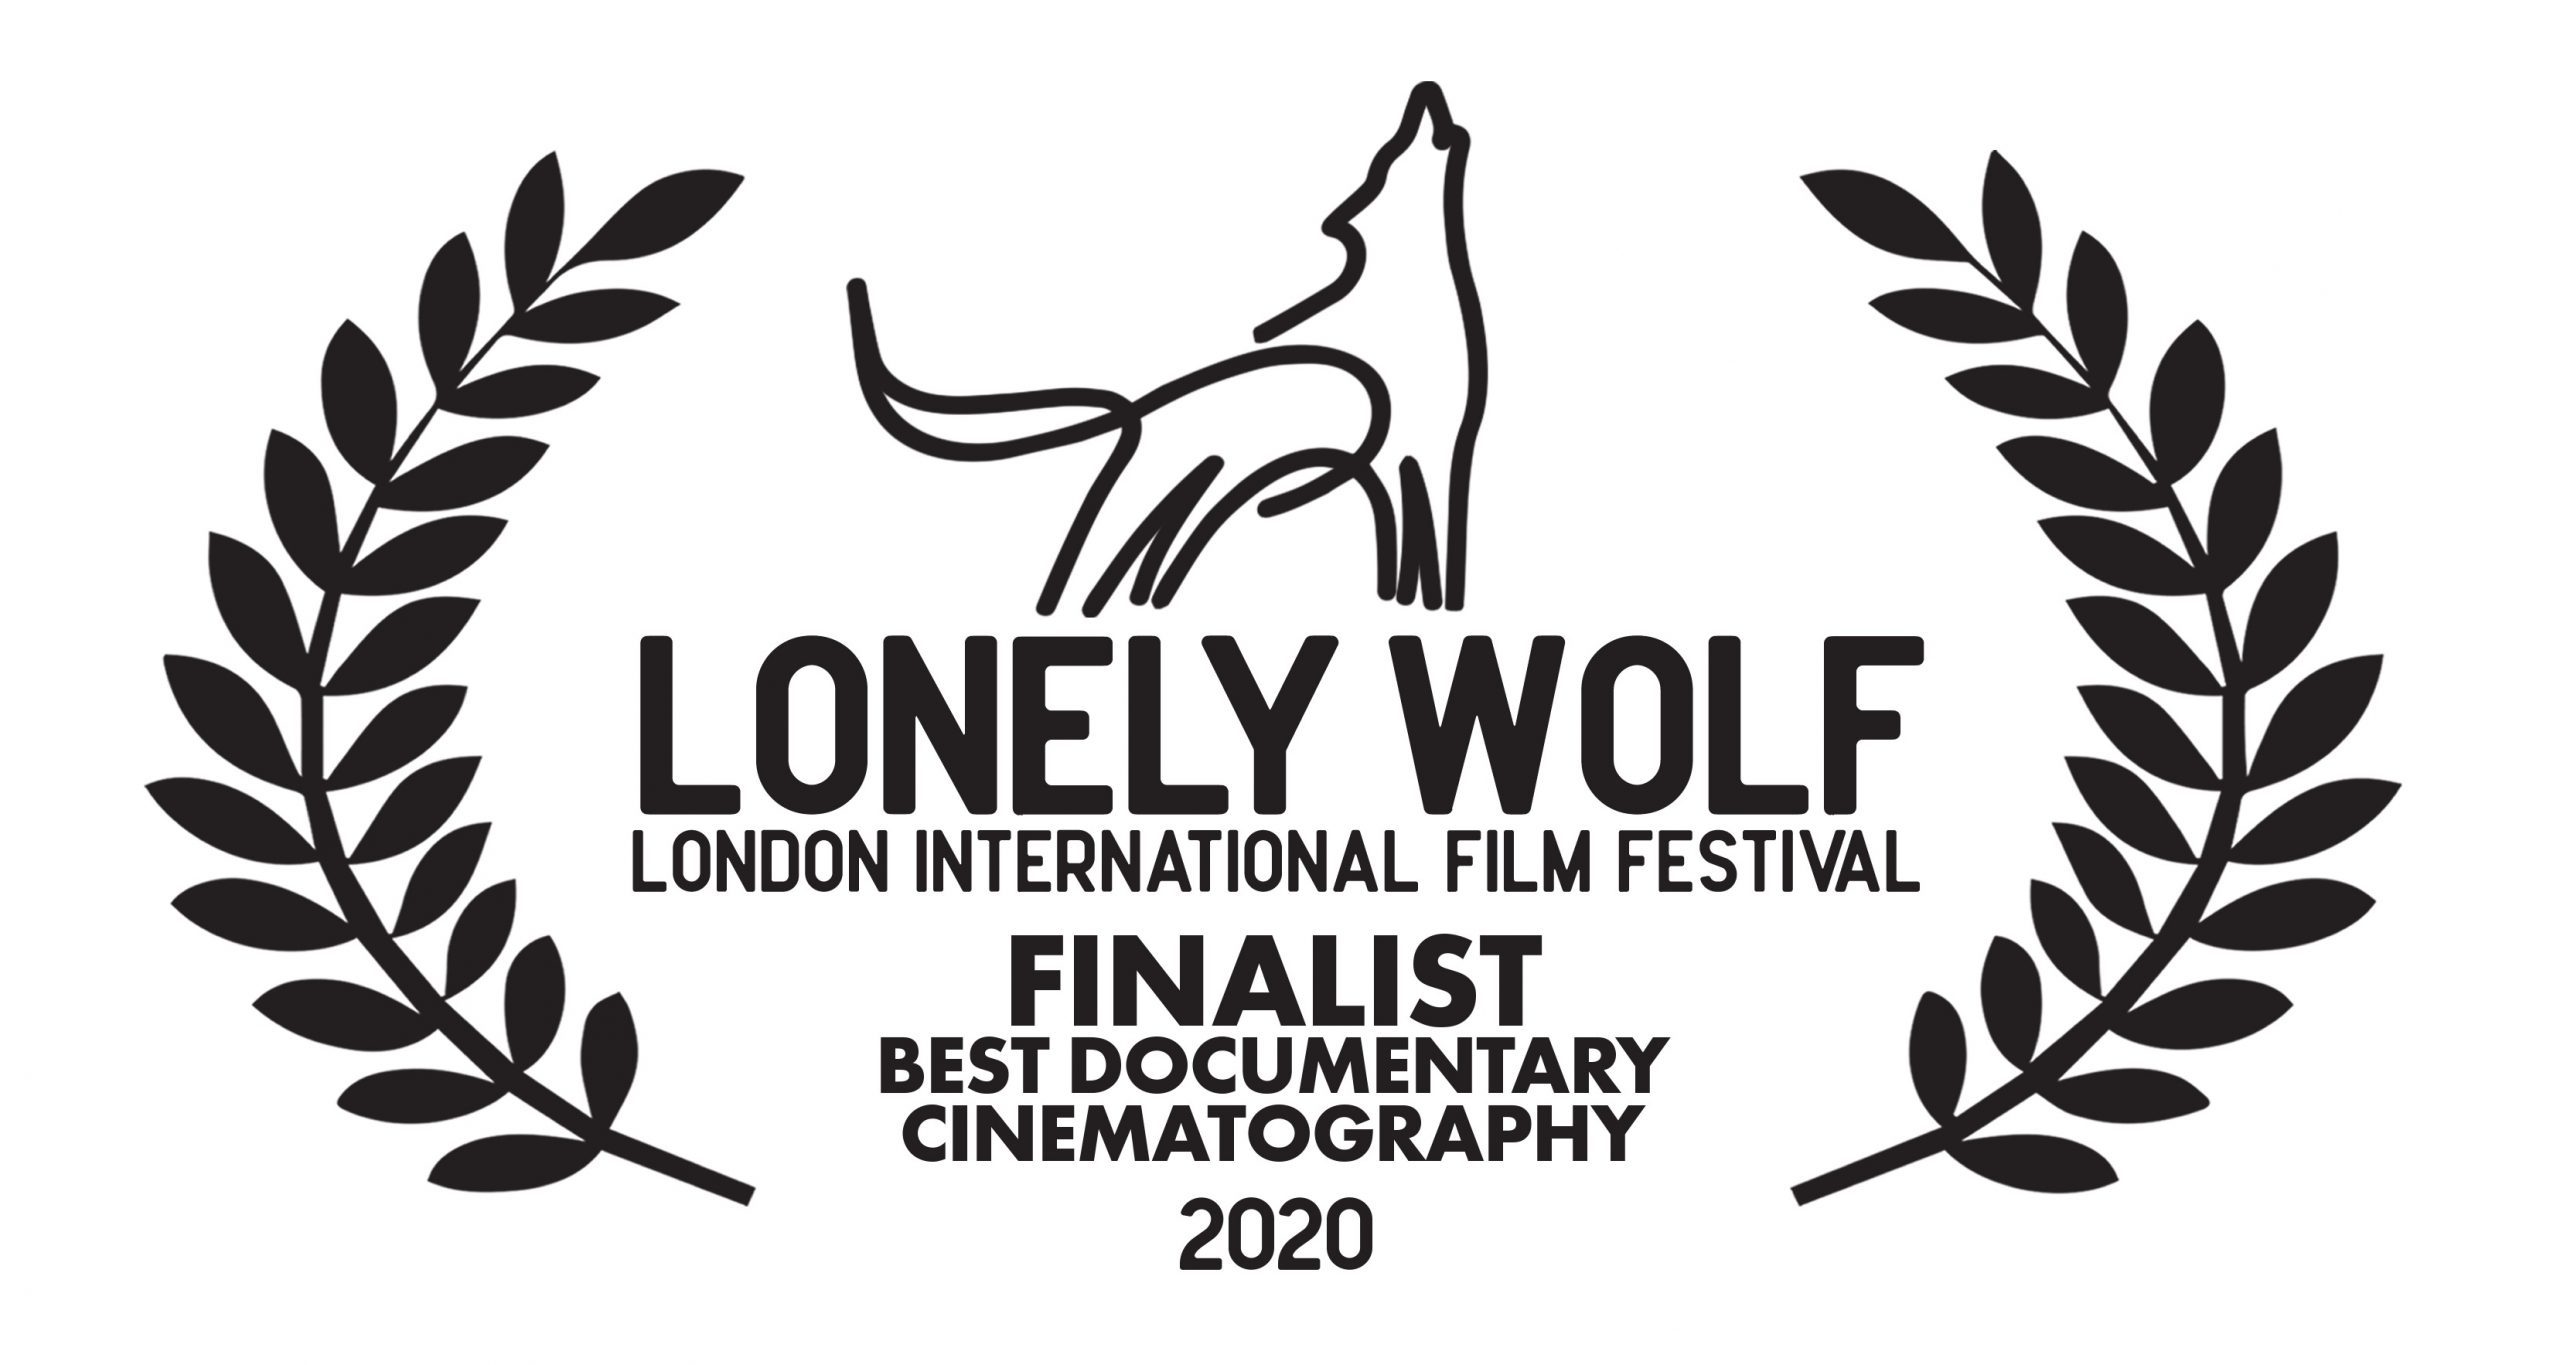 LonelyWolf Finalist Best Documentary Cinematography Small Laurel scaled